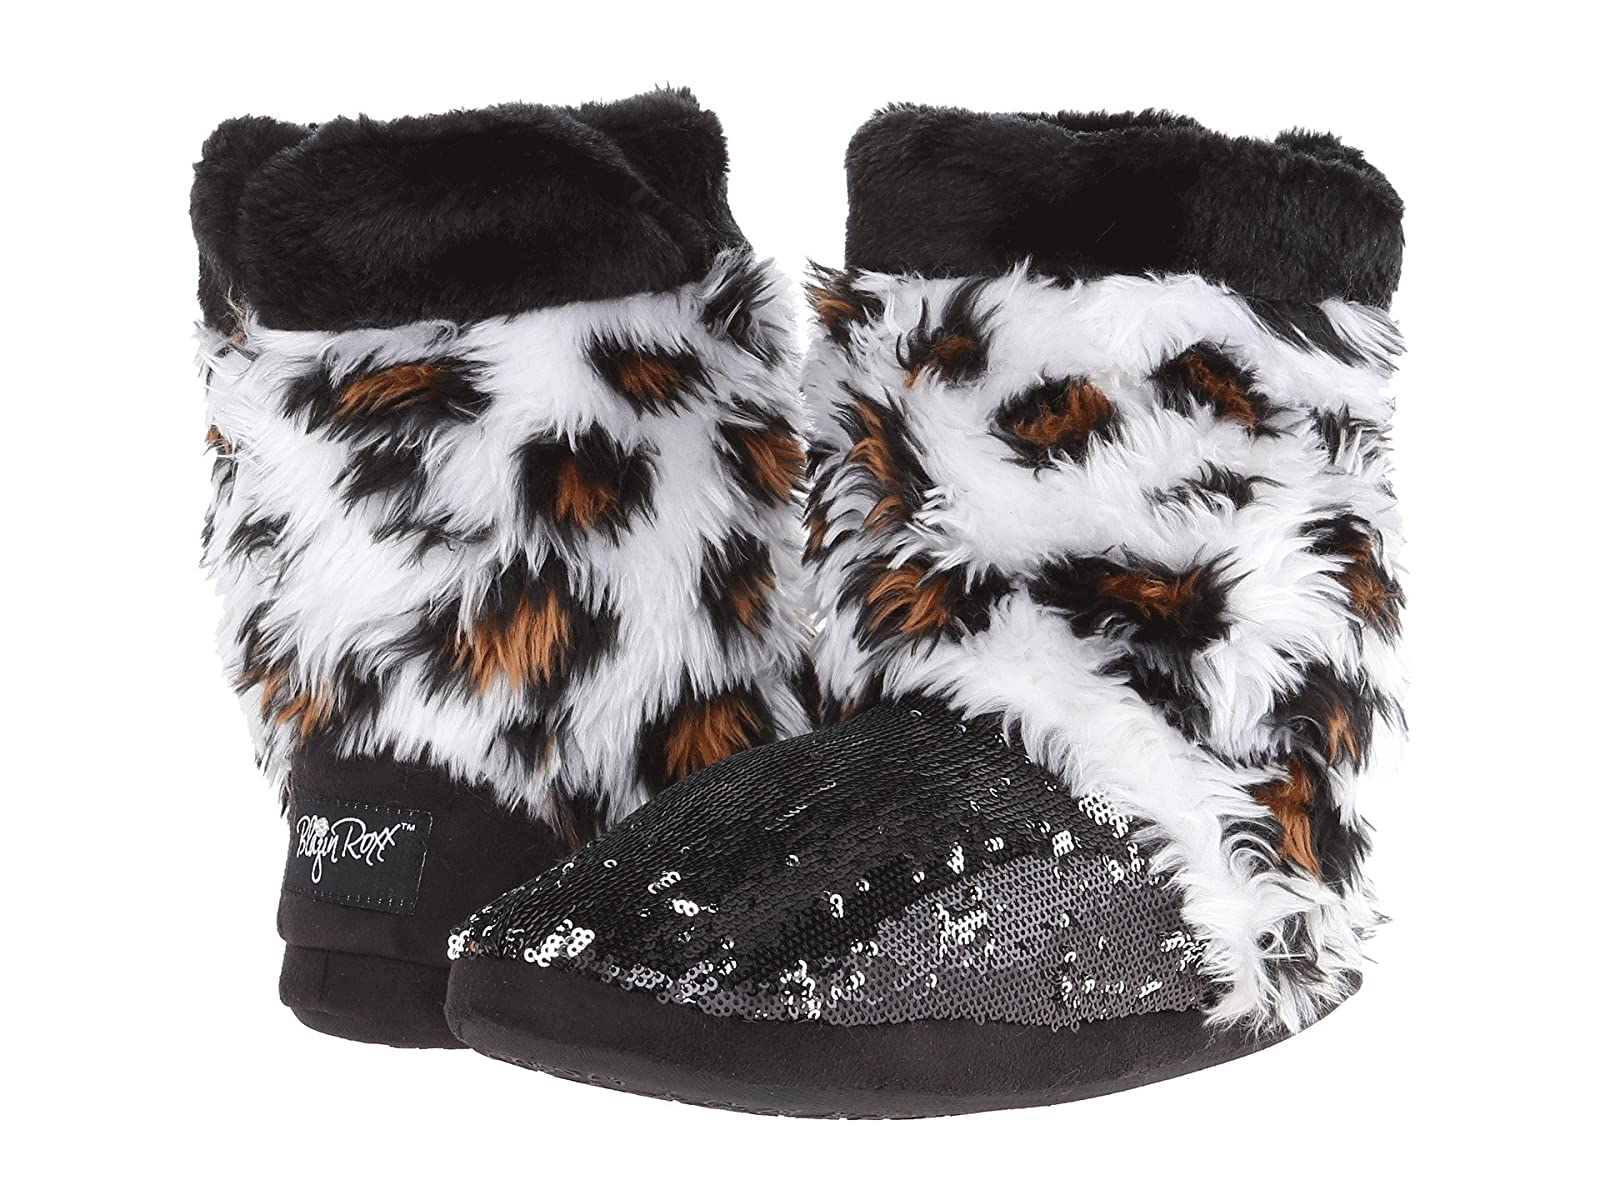 M&F Western Furry Sequin Bootie SlippersAtmospheric grades have affordable shoes